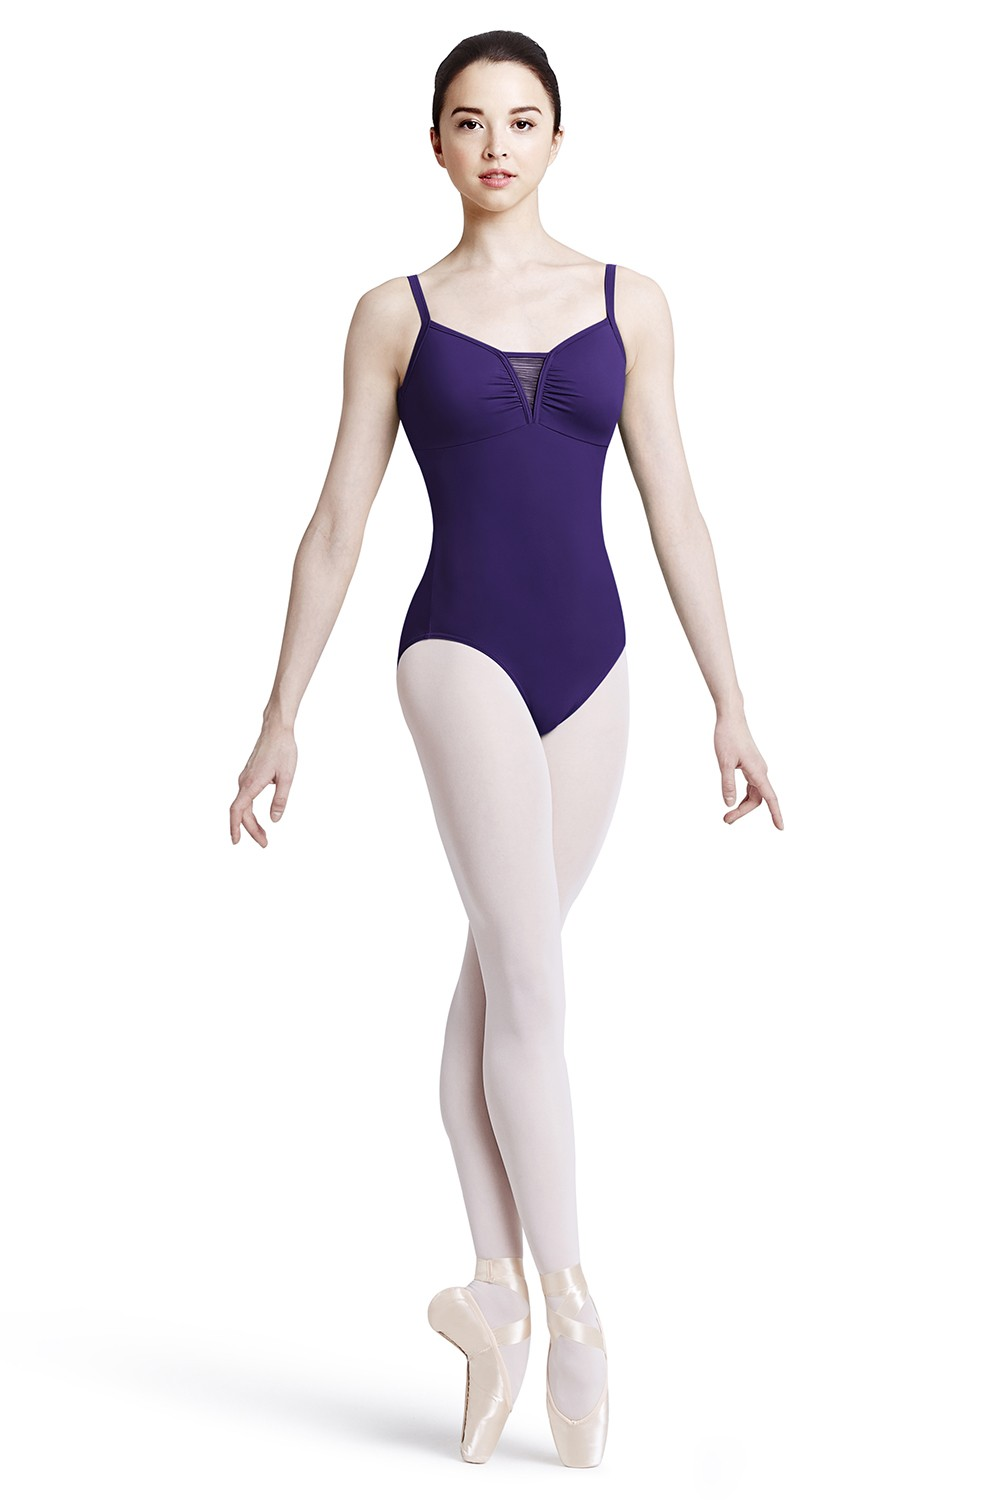 Body A Spalline Sottili Con Scollo A V Womens Camisole Leotards